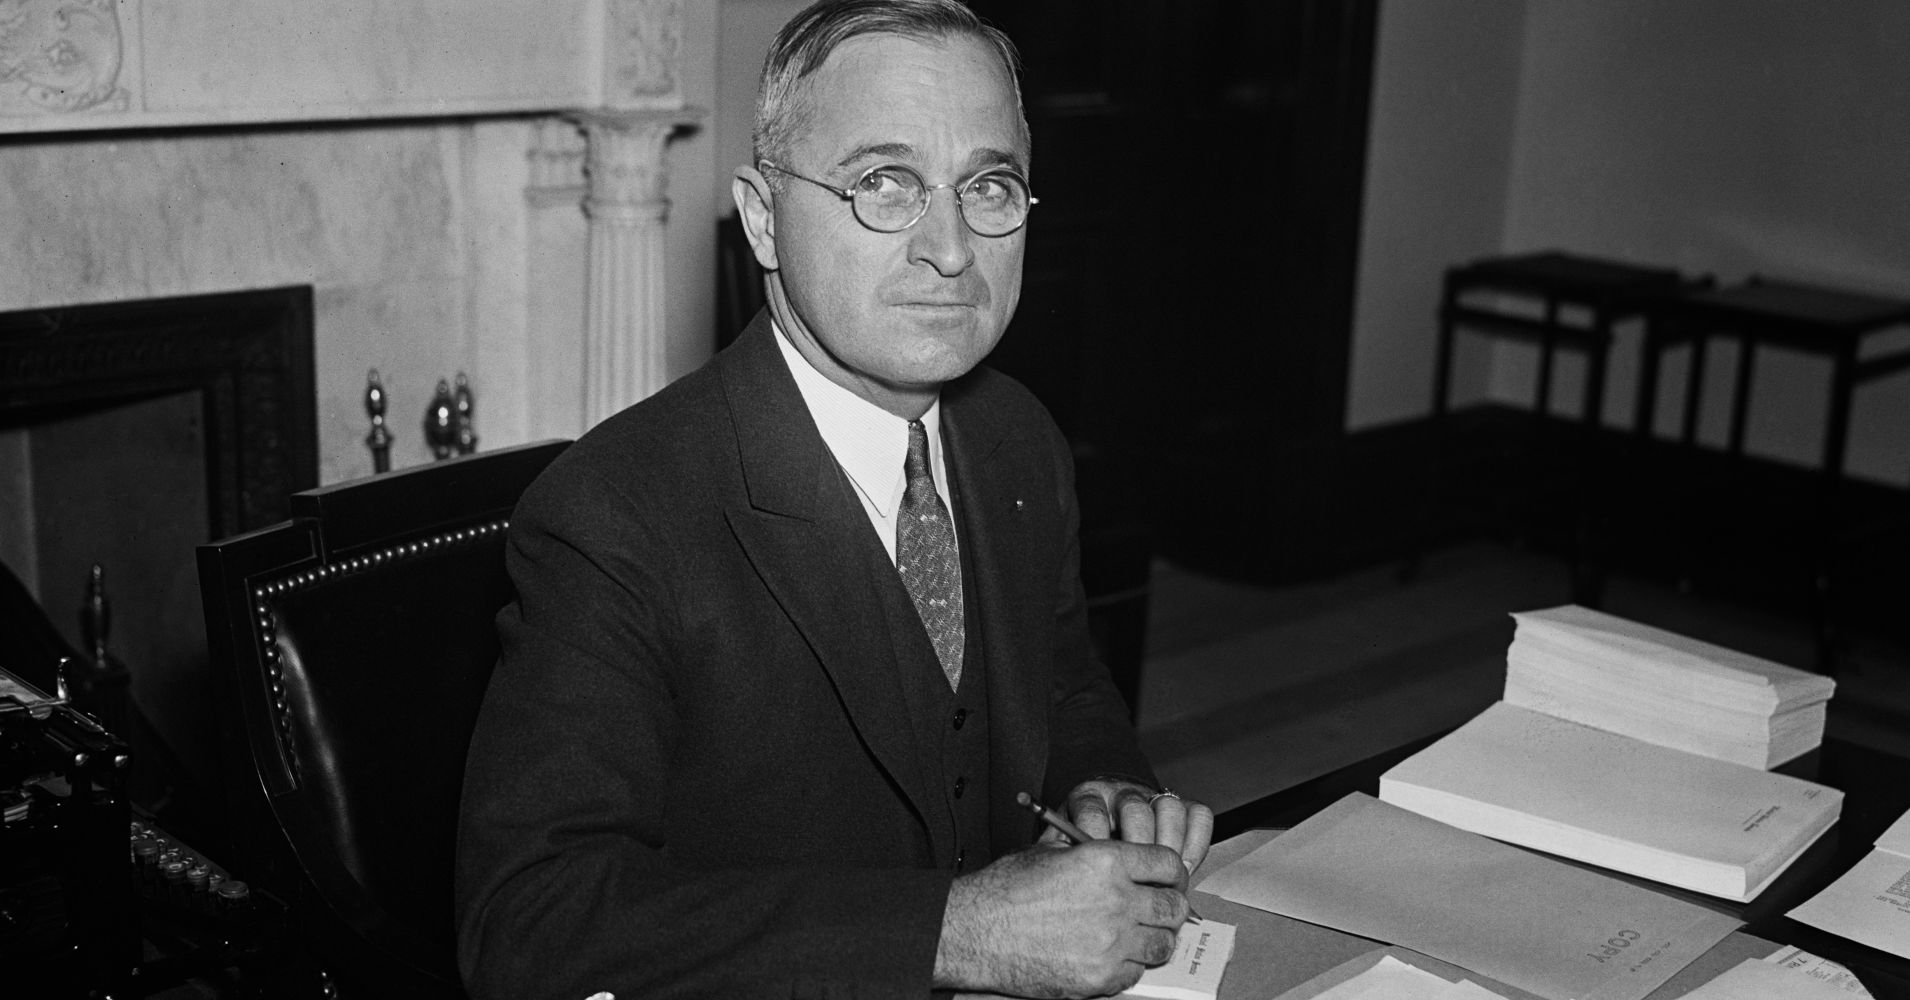 Politician with glasses